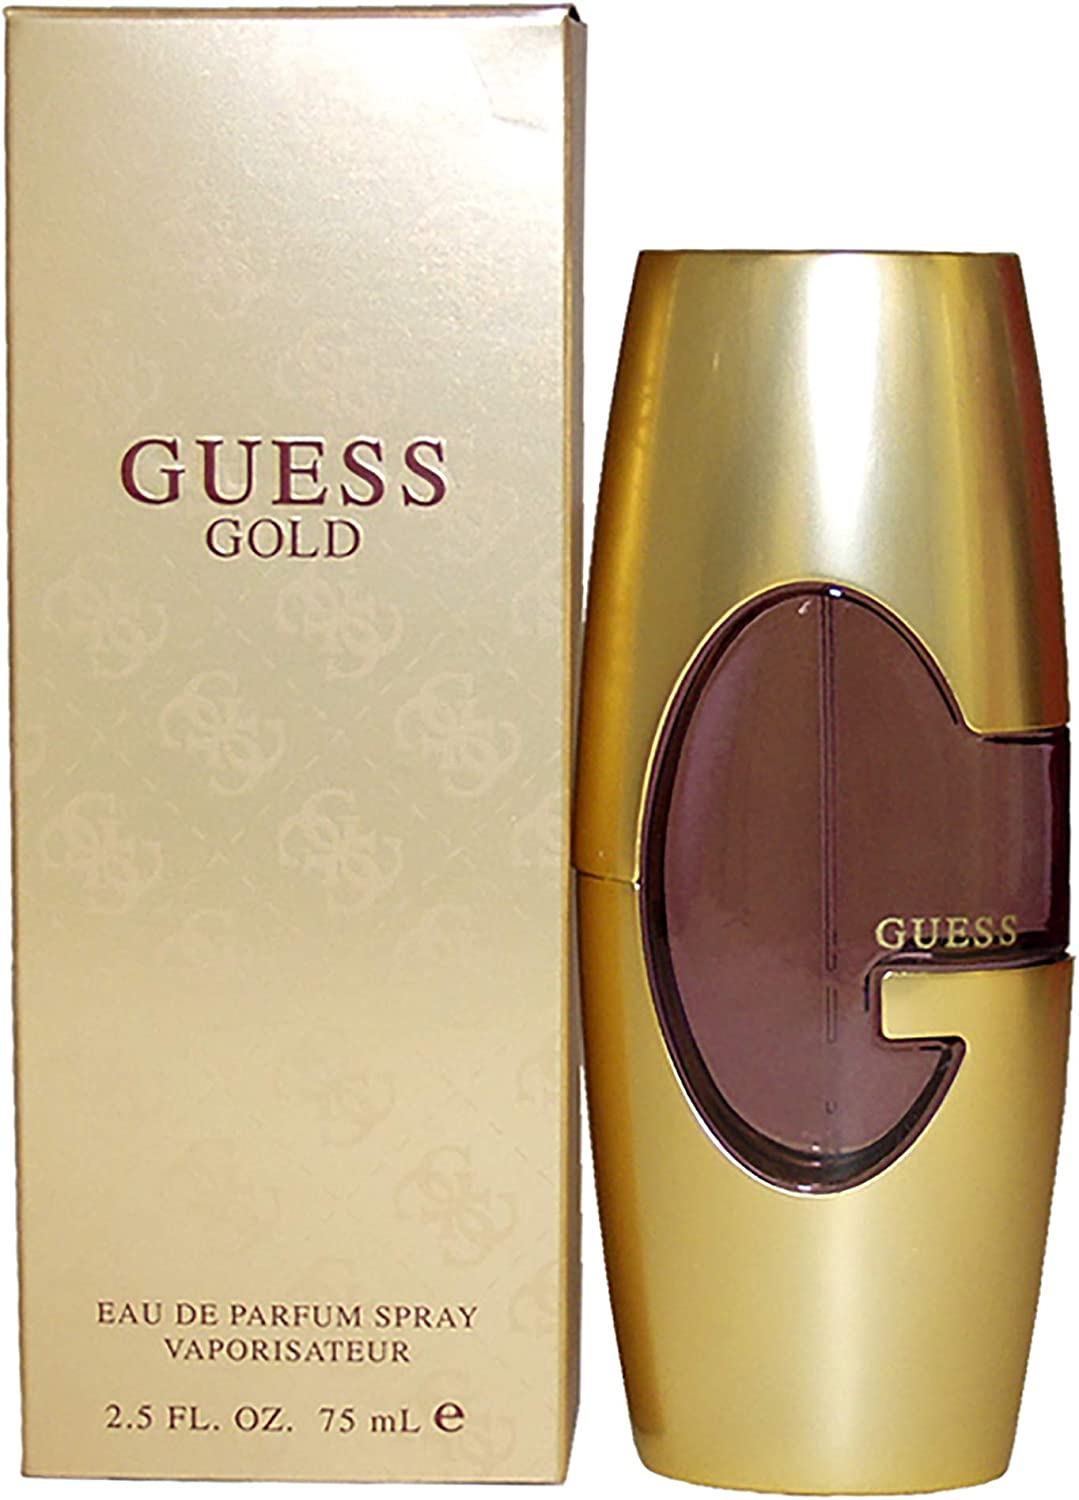 Guess Gold By Parlux Fragrances For Women. Eau De Parfum Spray 2.5 Oz. by GUESS